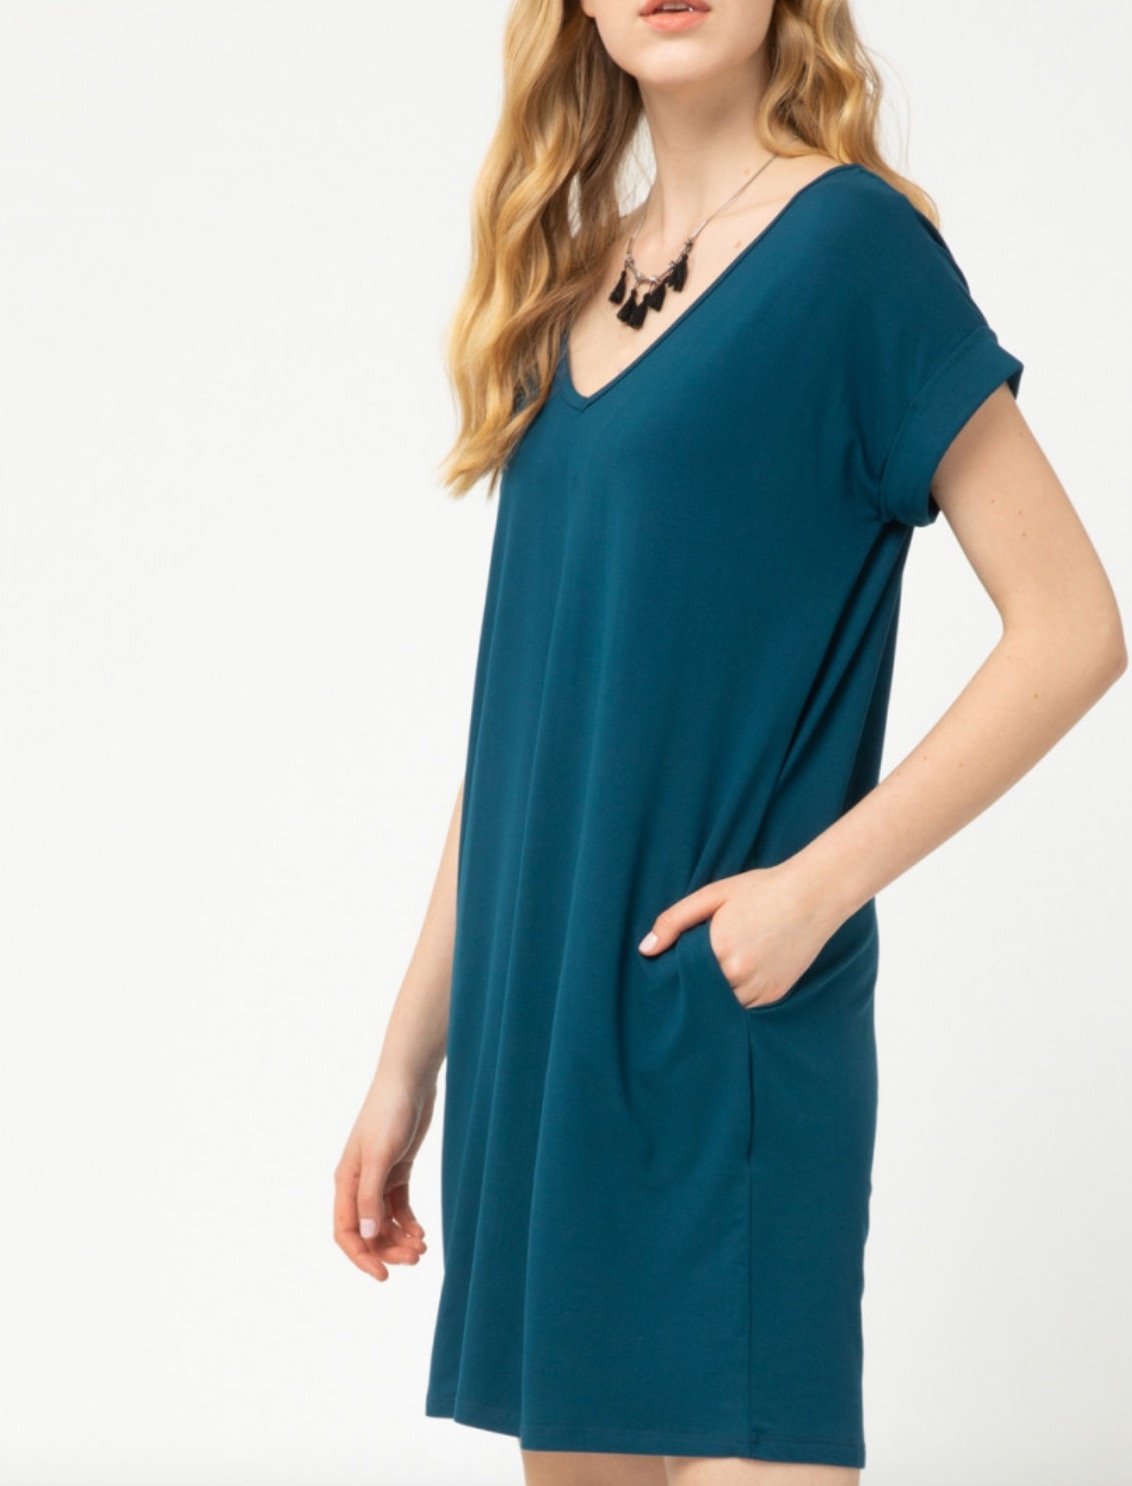 EO Cuffed Sleeve T Shirt Dress 4576